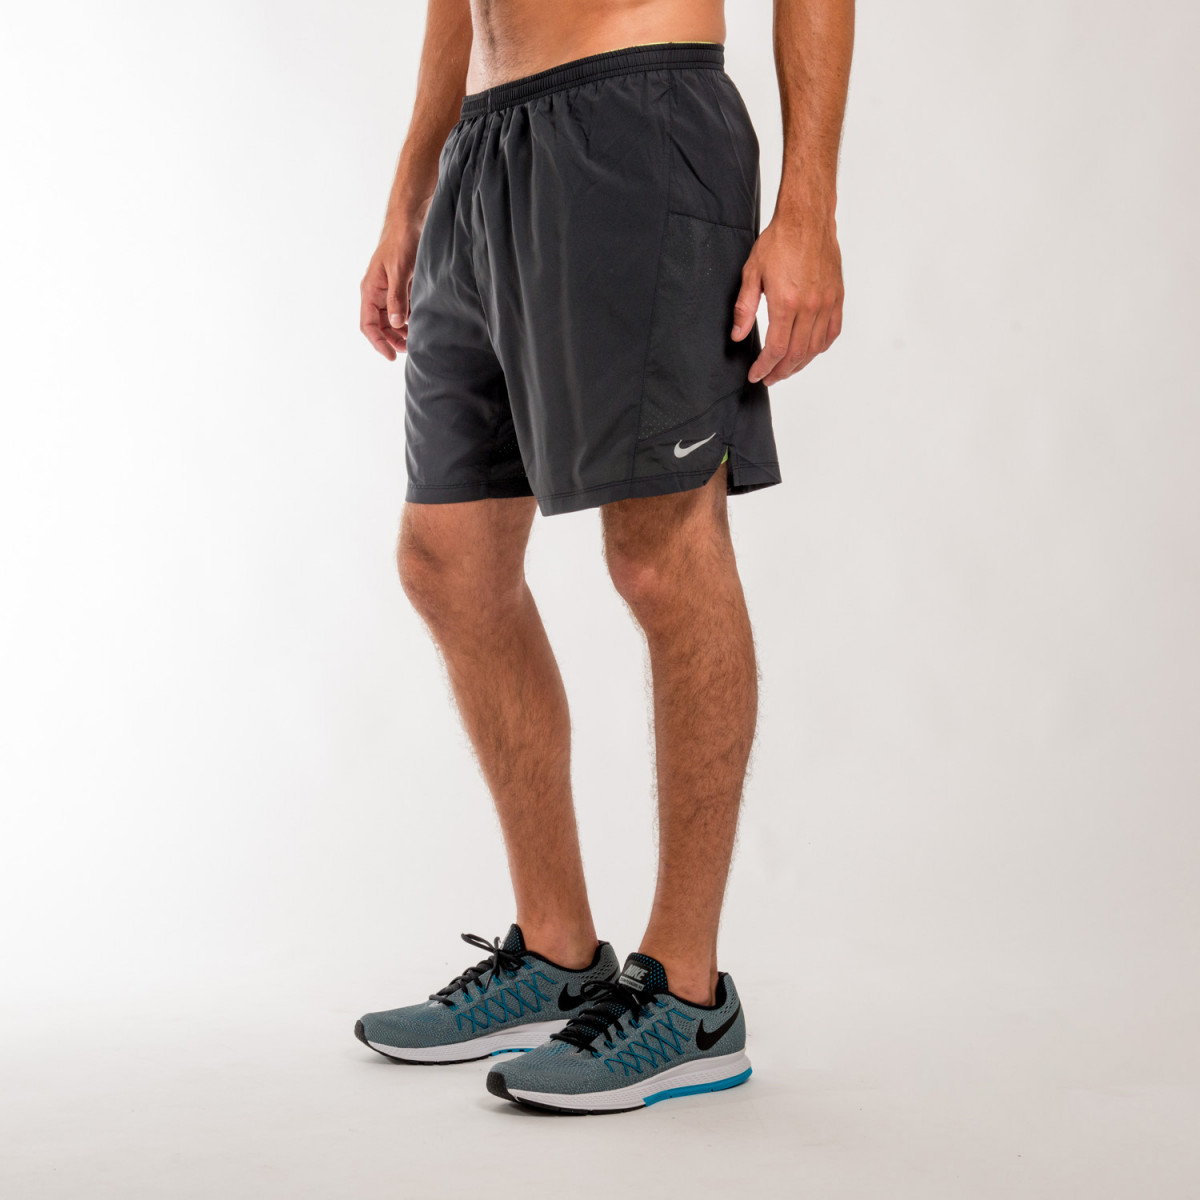 SHORT NIKE 7' PURSUIT 2-IN-1